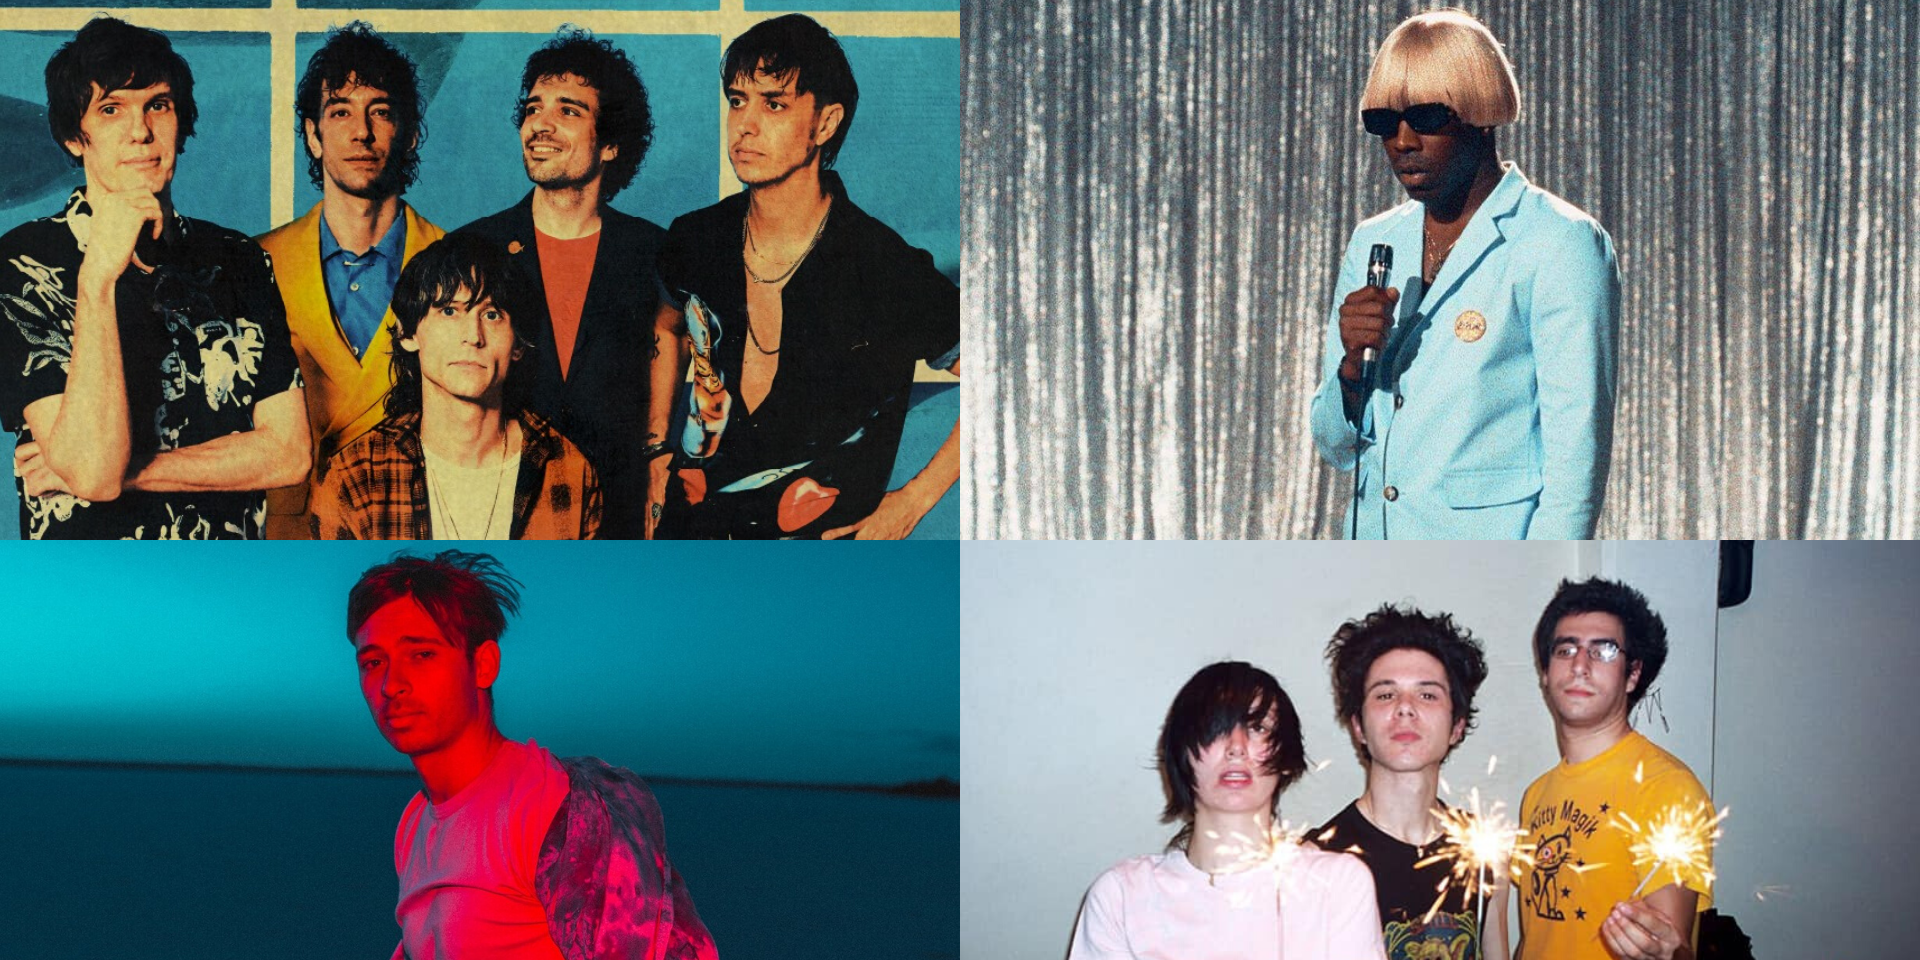 The Strokes, Tyler, The Creator, Flume, Yeah Yeah Yeahs, and more to perform at Splendour in the Grass 2020